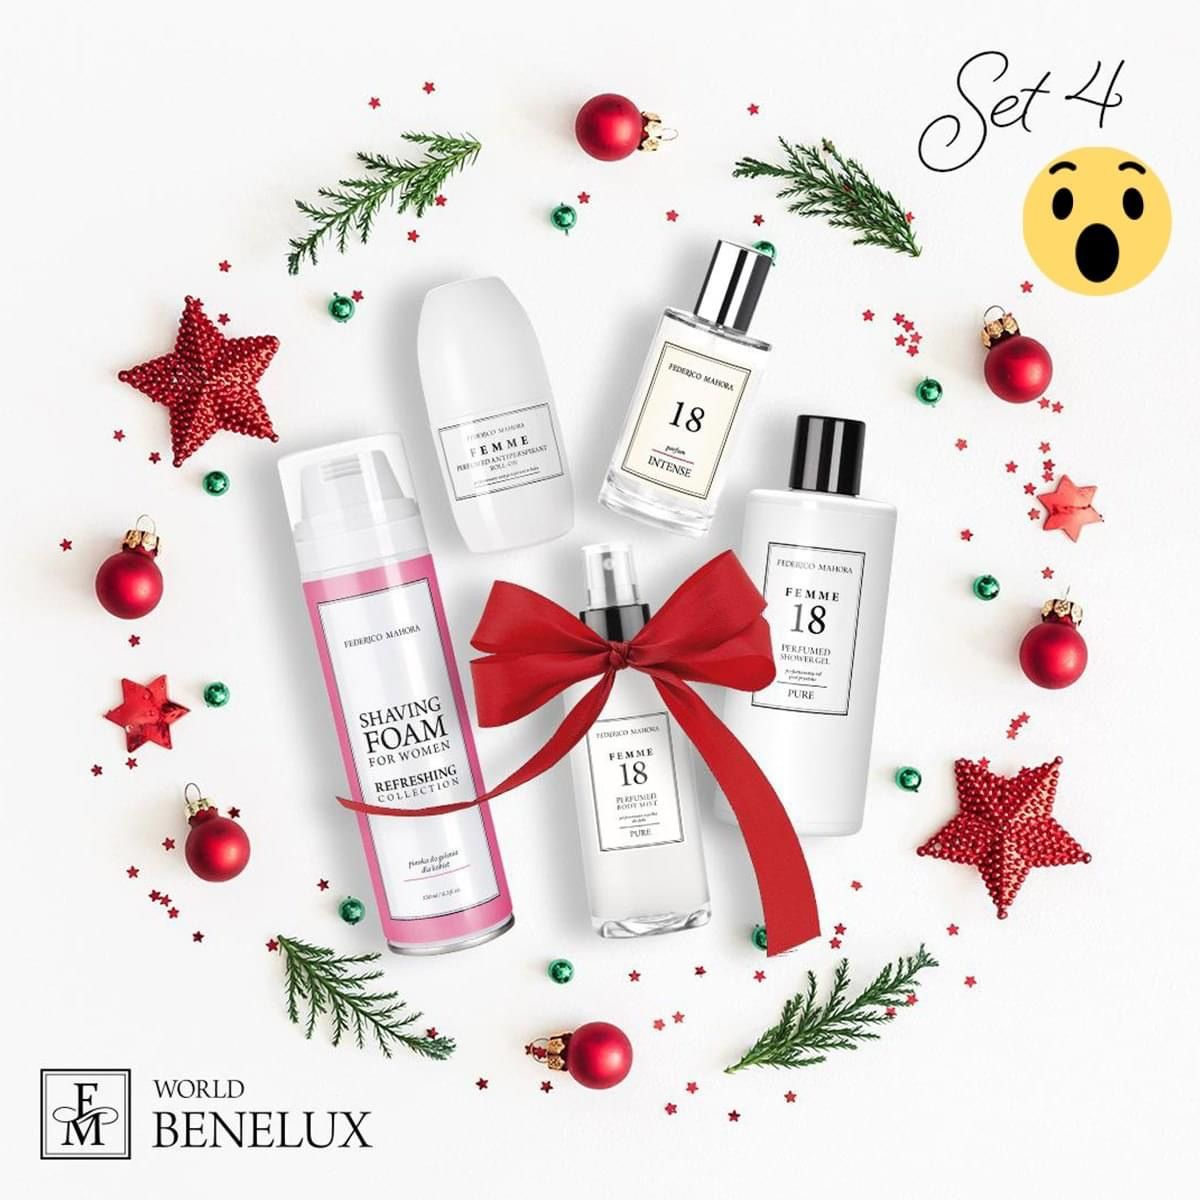 FM Christmas Giftset in 2020 Christmas arts and crafts